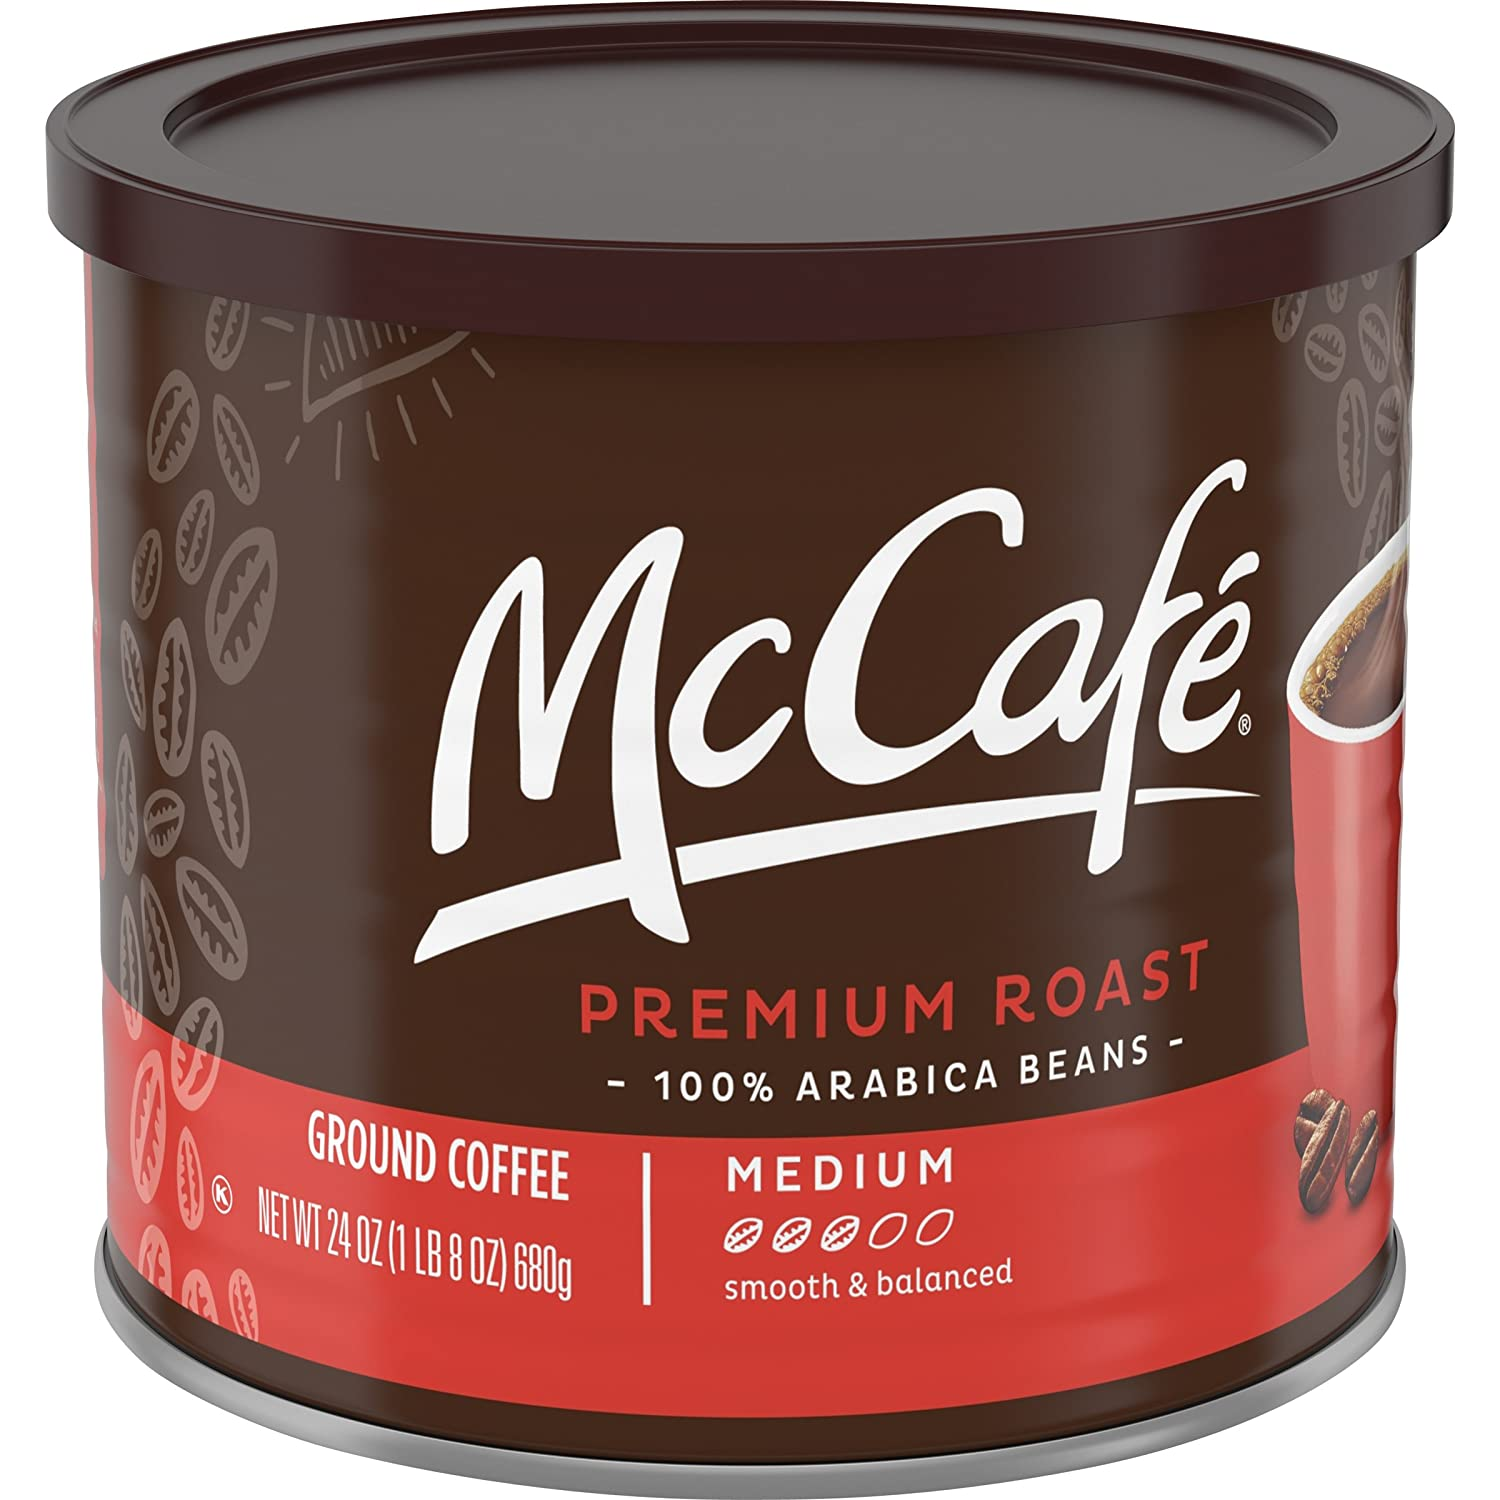 McCafe Premium Medium Roast Ground Coffee (24 oz Tin)